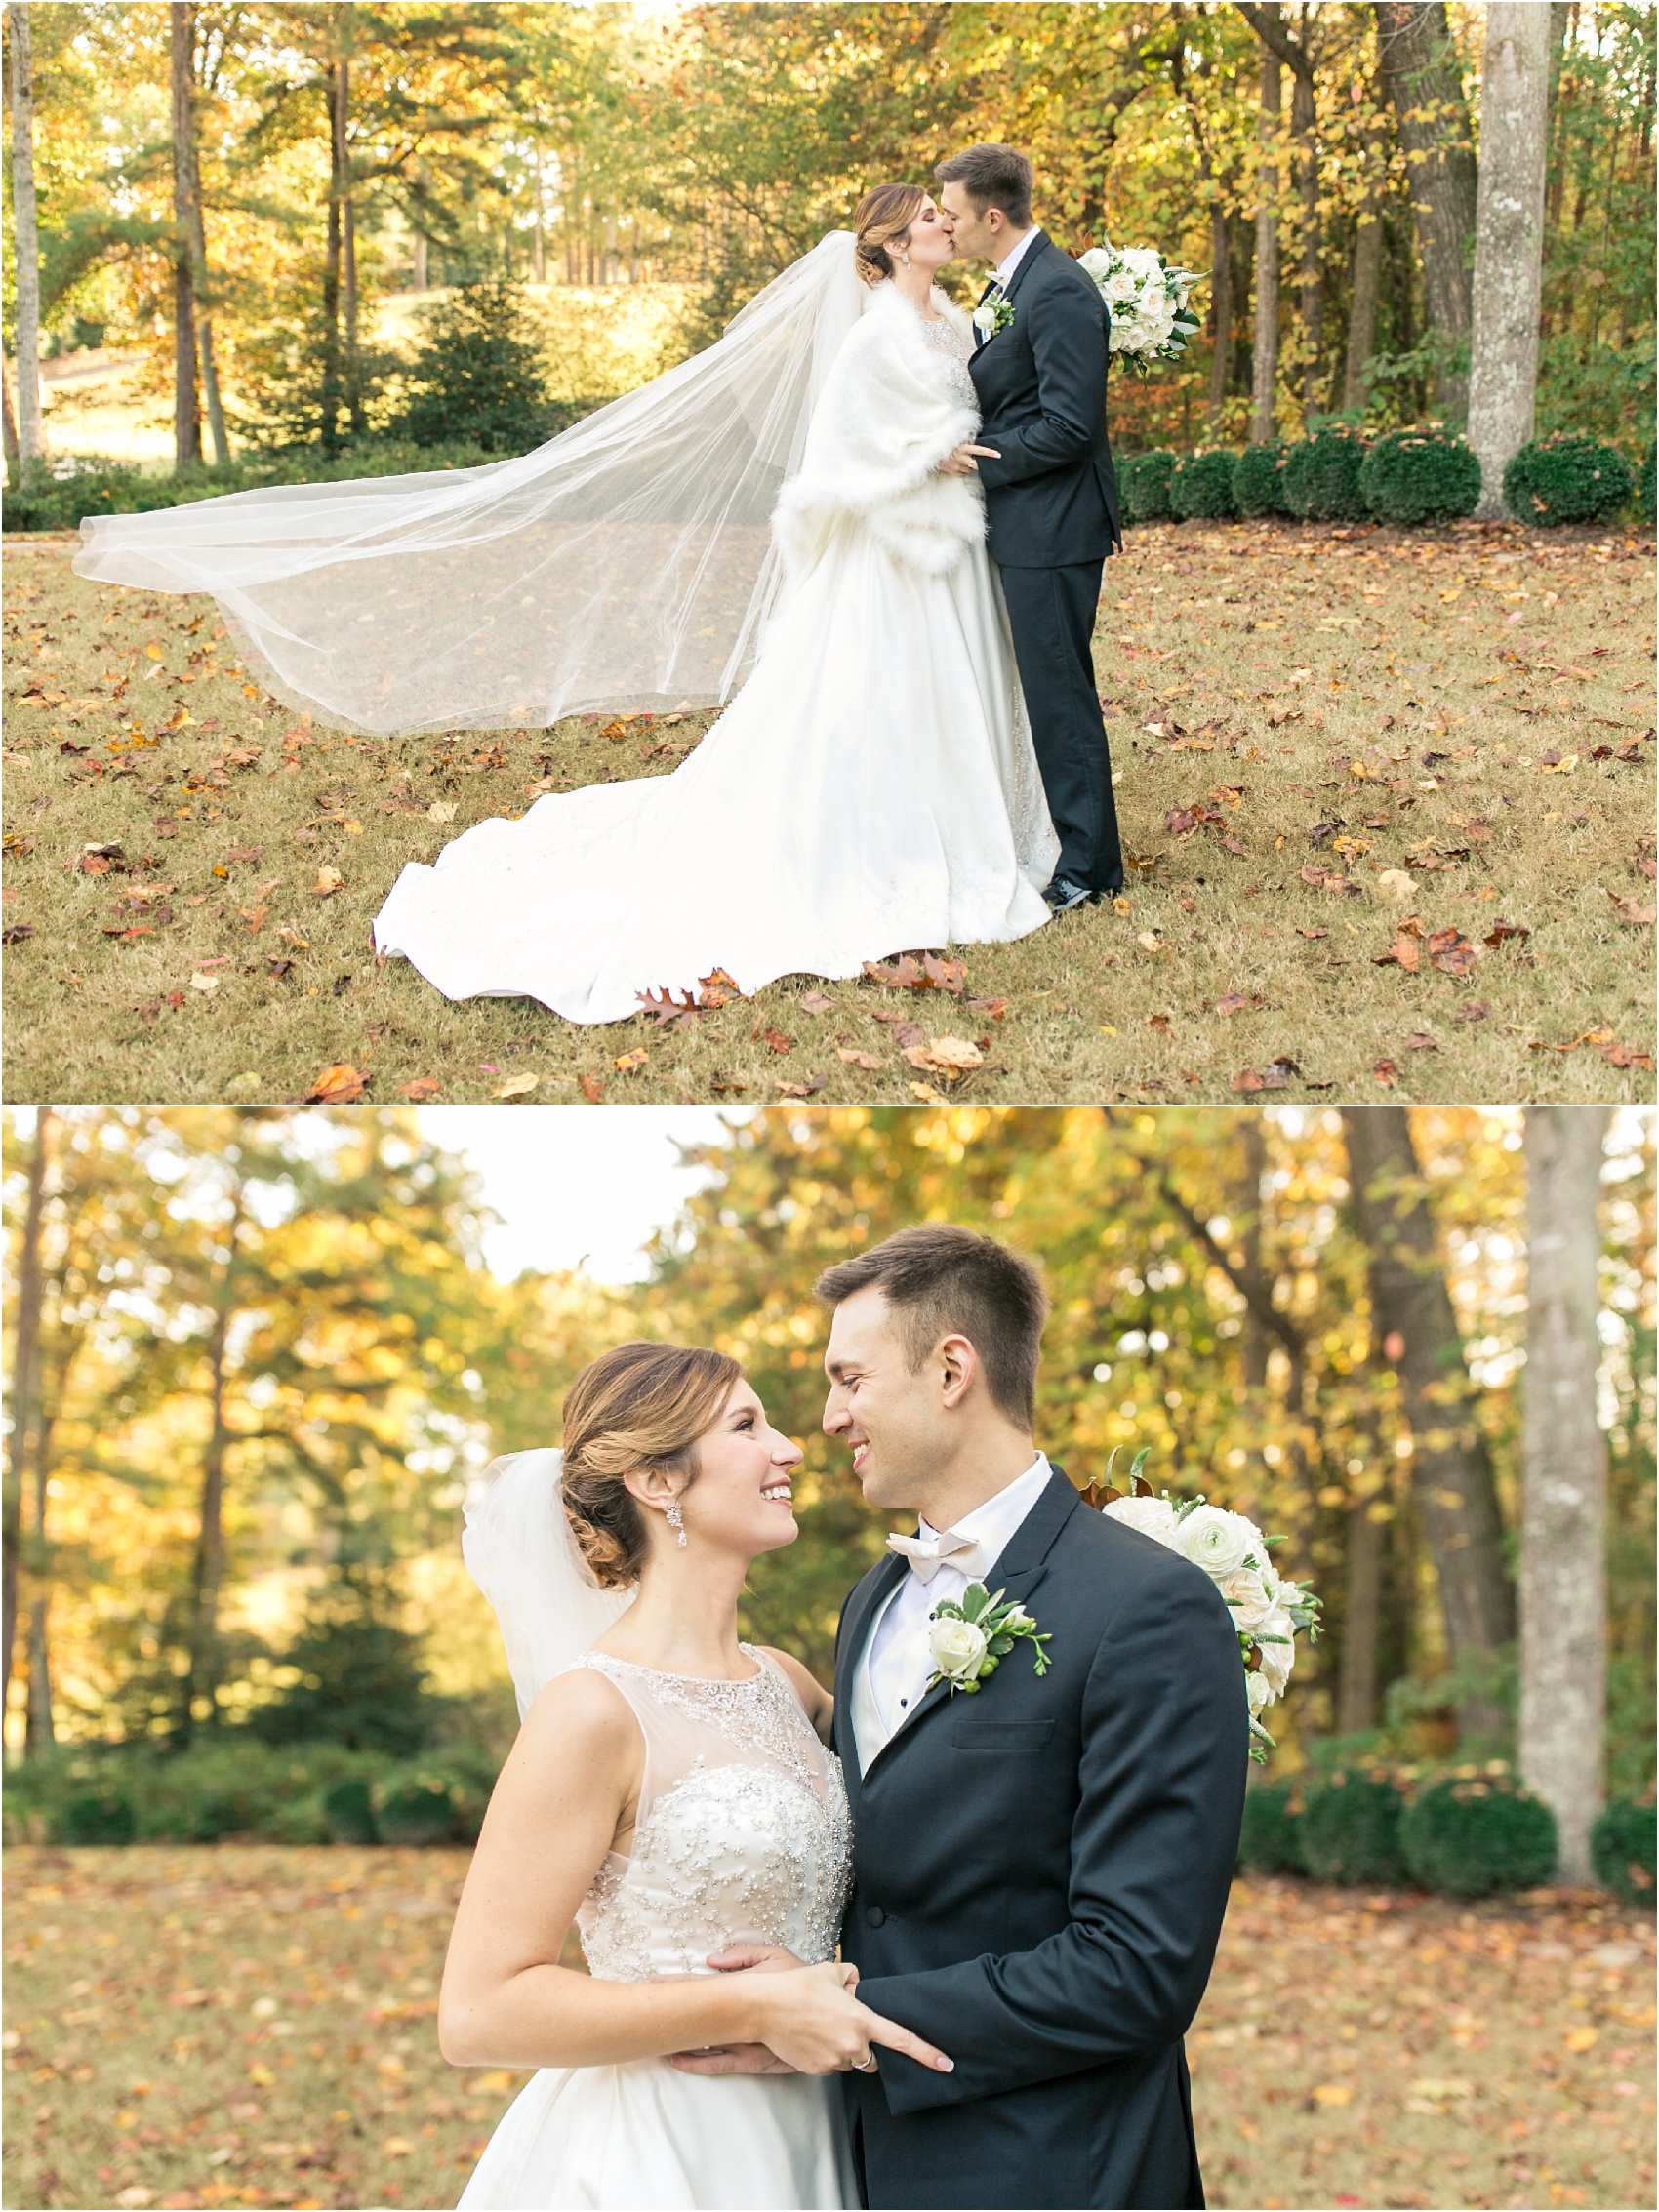 Savannah Eve Photography- Bottiglion-Scope Wedding- Sneak Peek-42.jpg